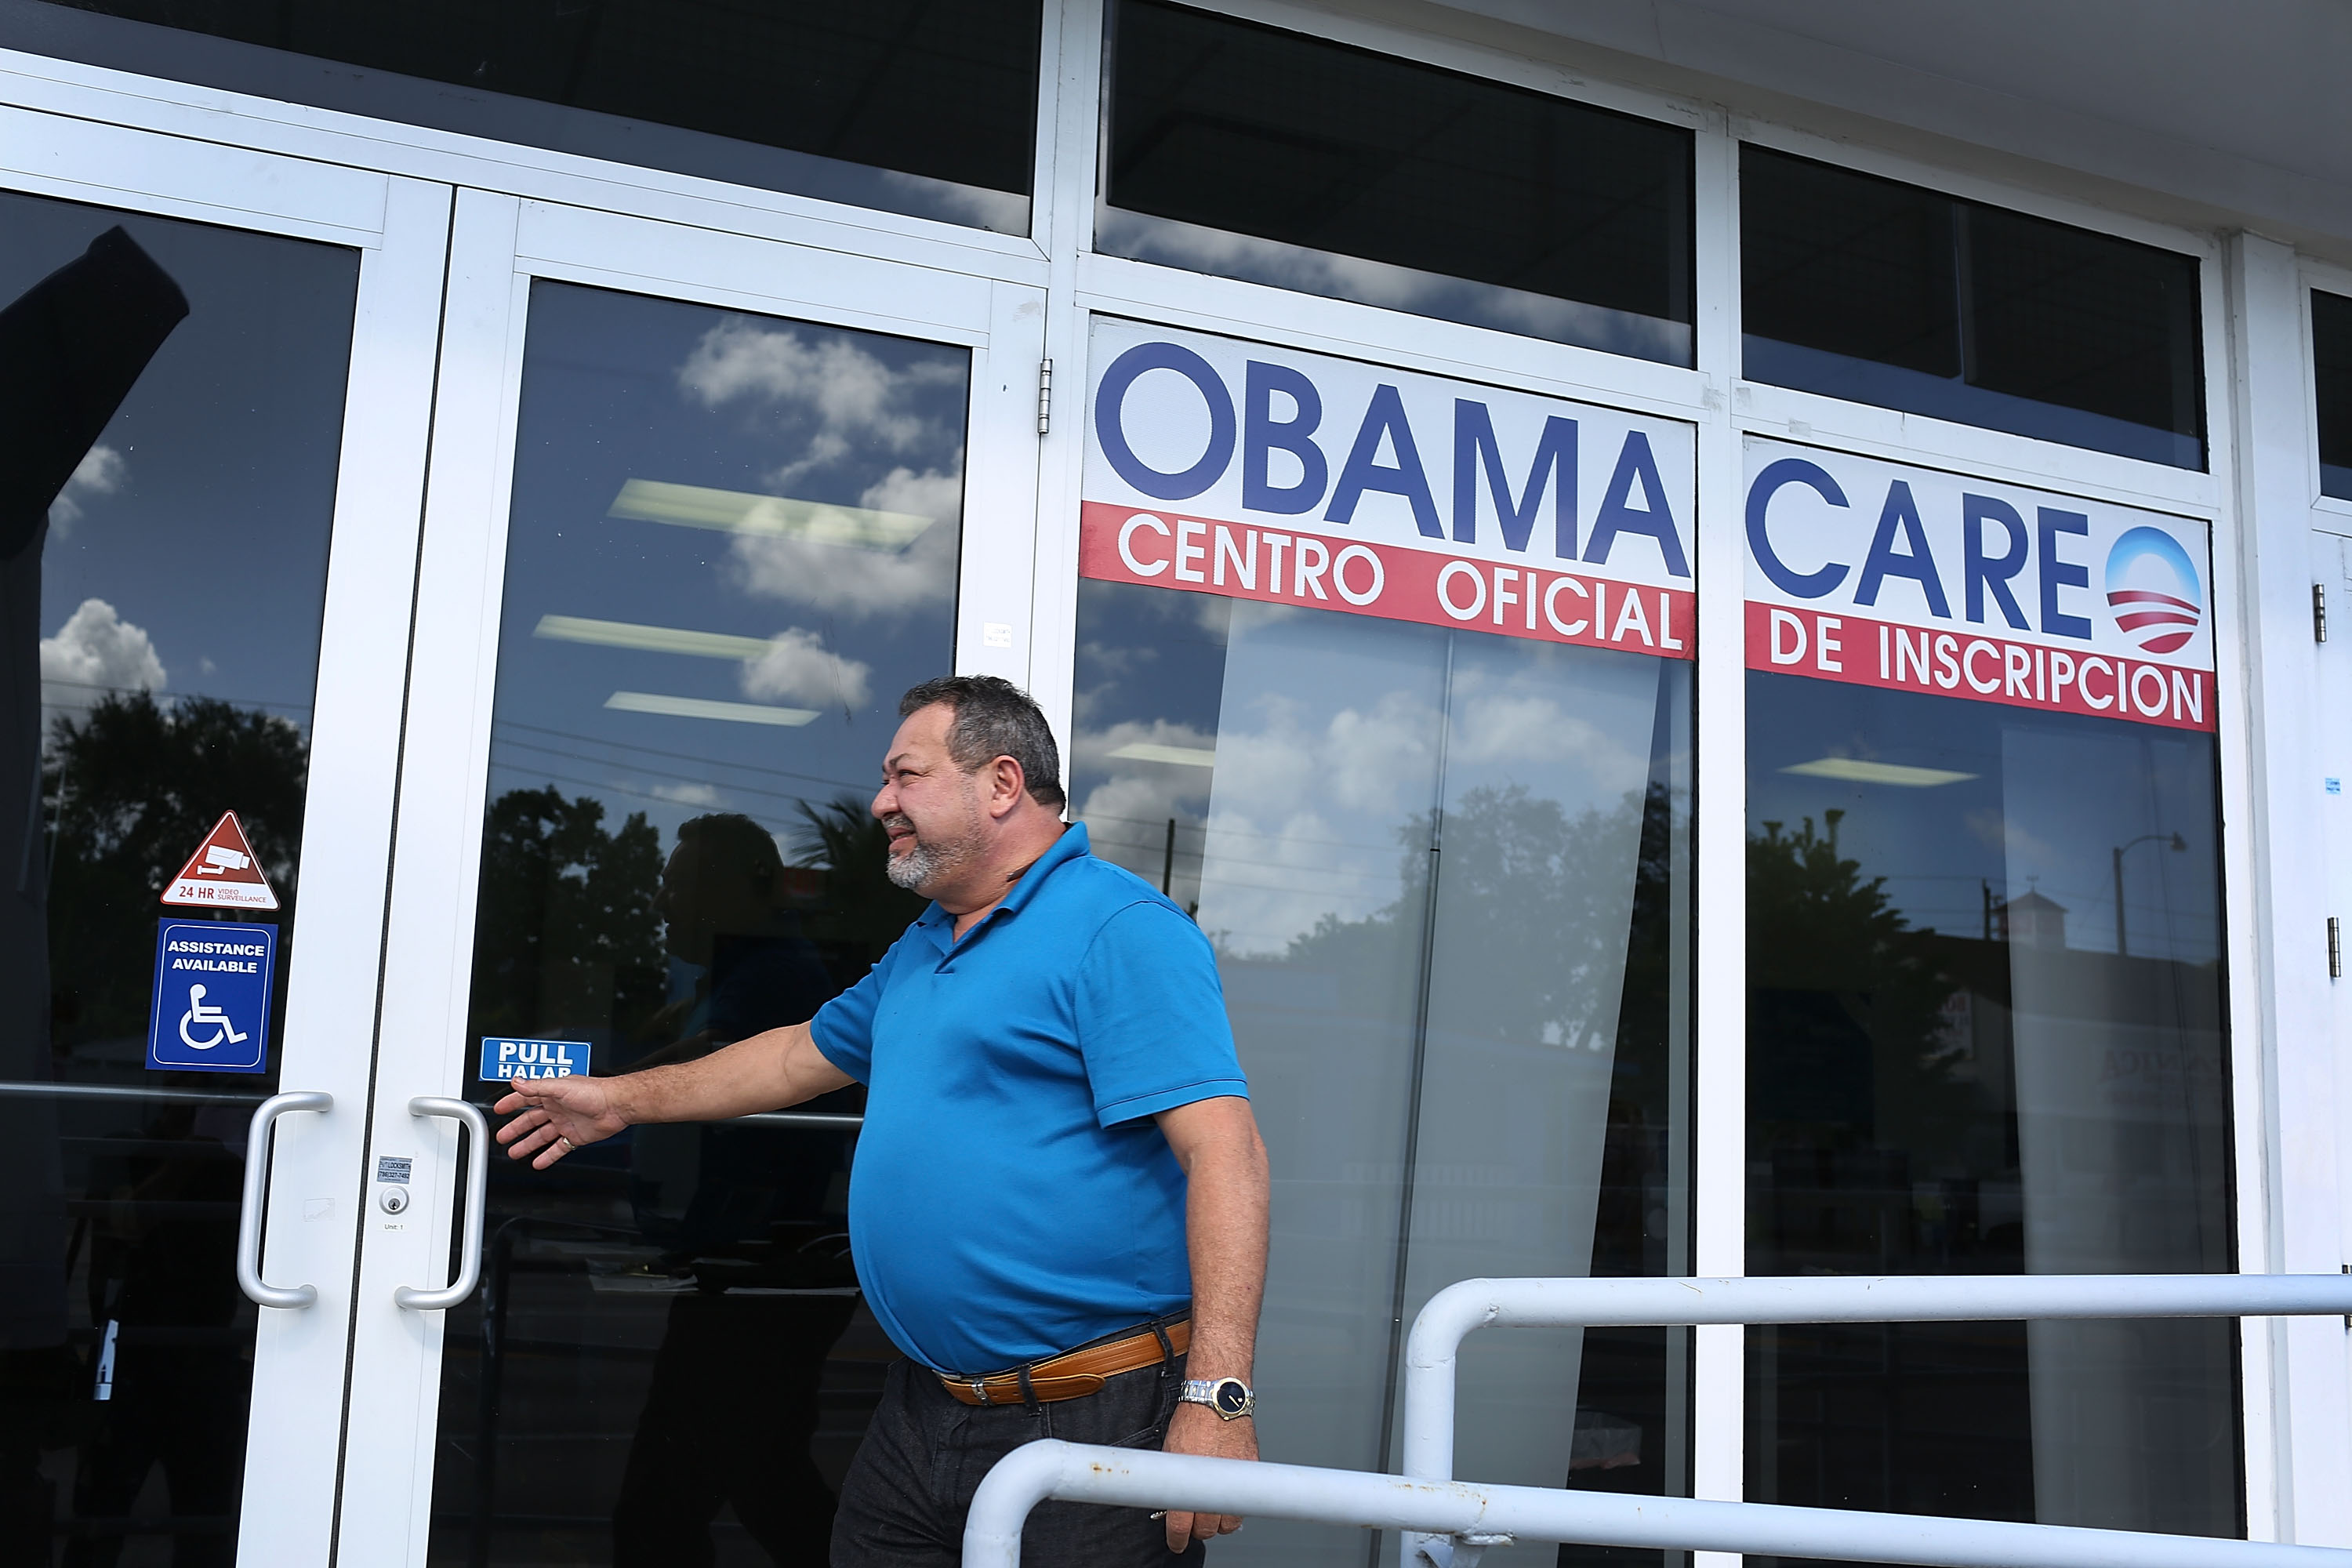 A person walks into the UniVista Insurance company office where people are signing up for health care plans under the Affordable Care Act, also known as Obamacare, in Miami on Dec. 15, 2015. (Joe Raedle/Getty Images)